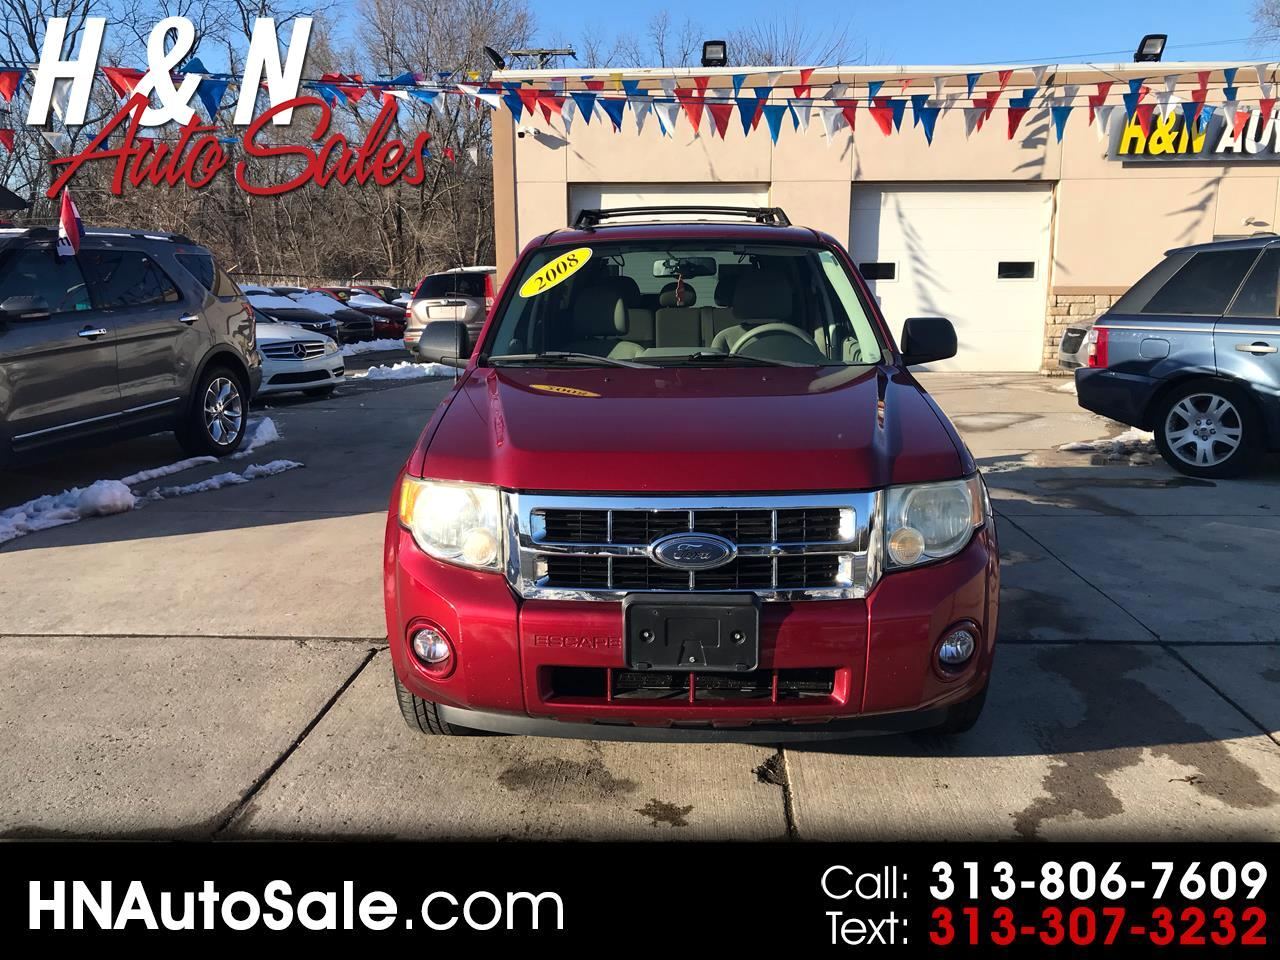 Ford Escape FWD 4dr I4 Auto XLT 2008